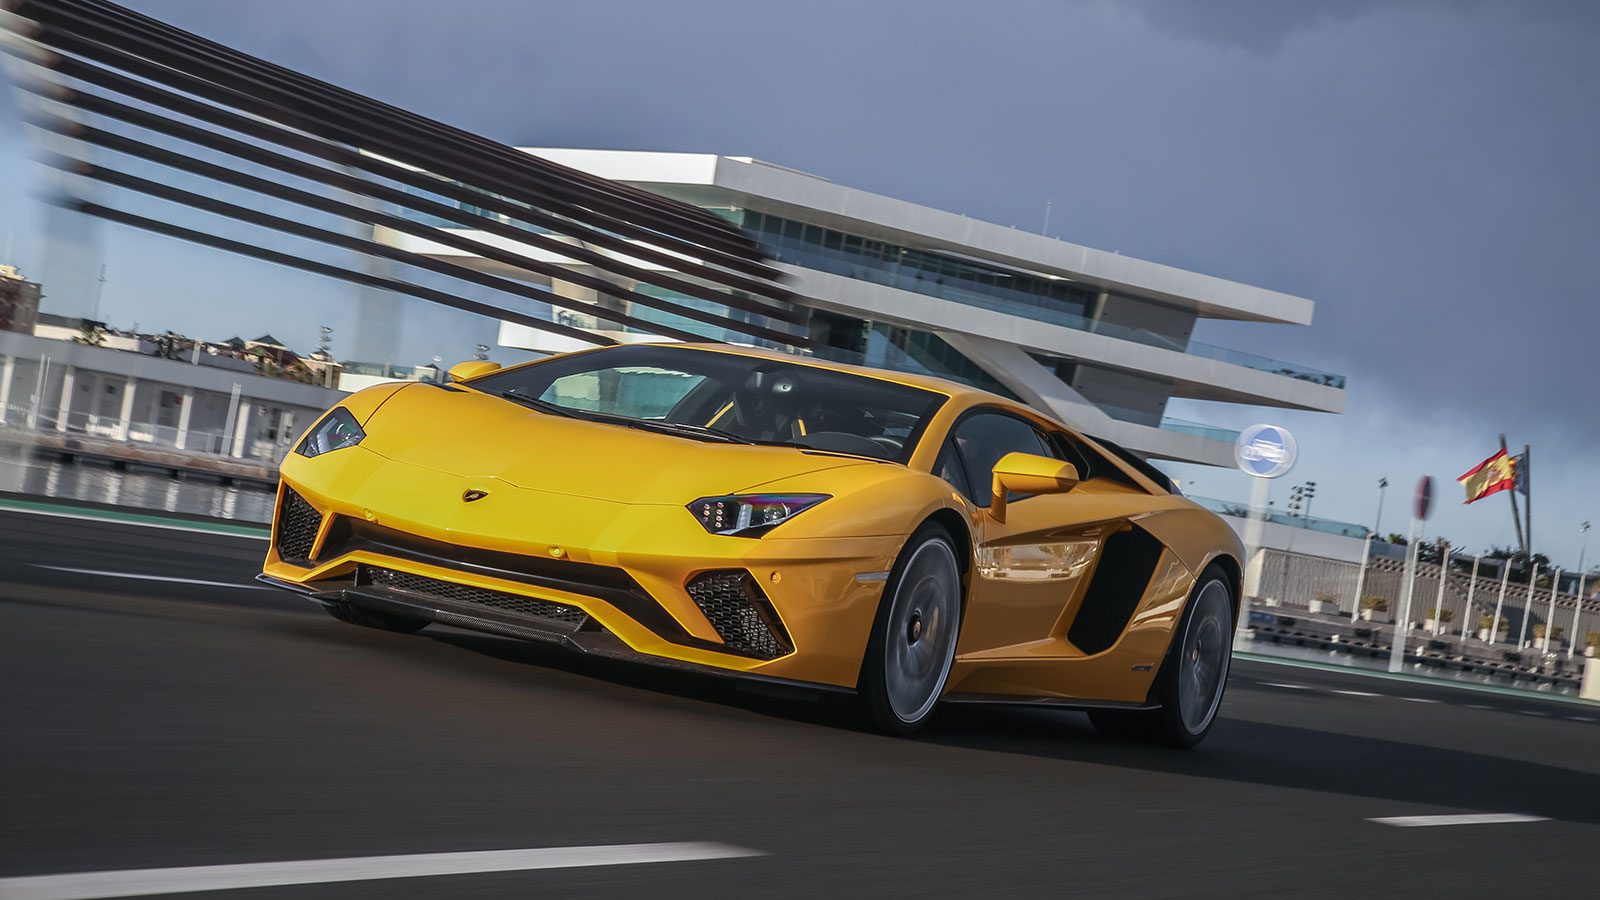 Lamborghini Aventador S Coupe - The Icon Reborn image 32